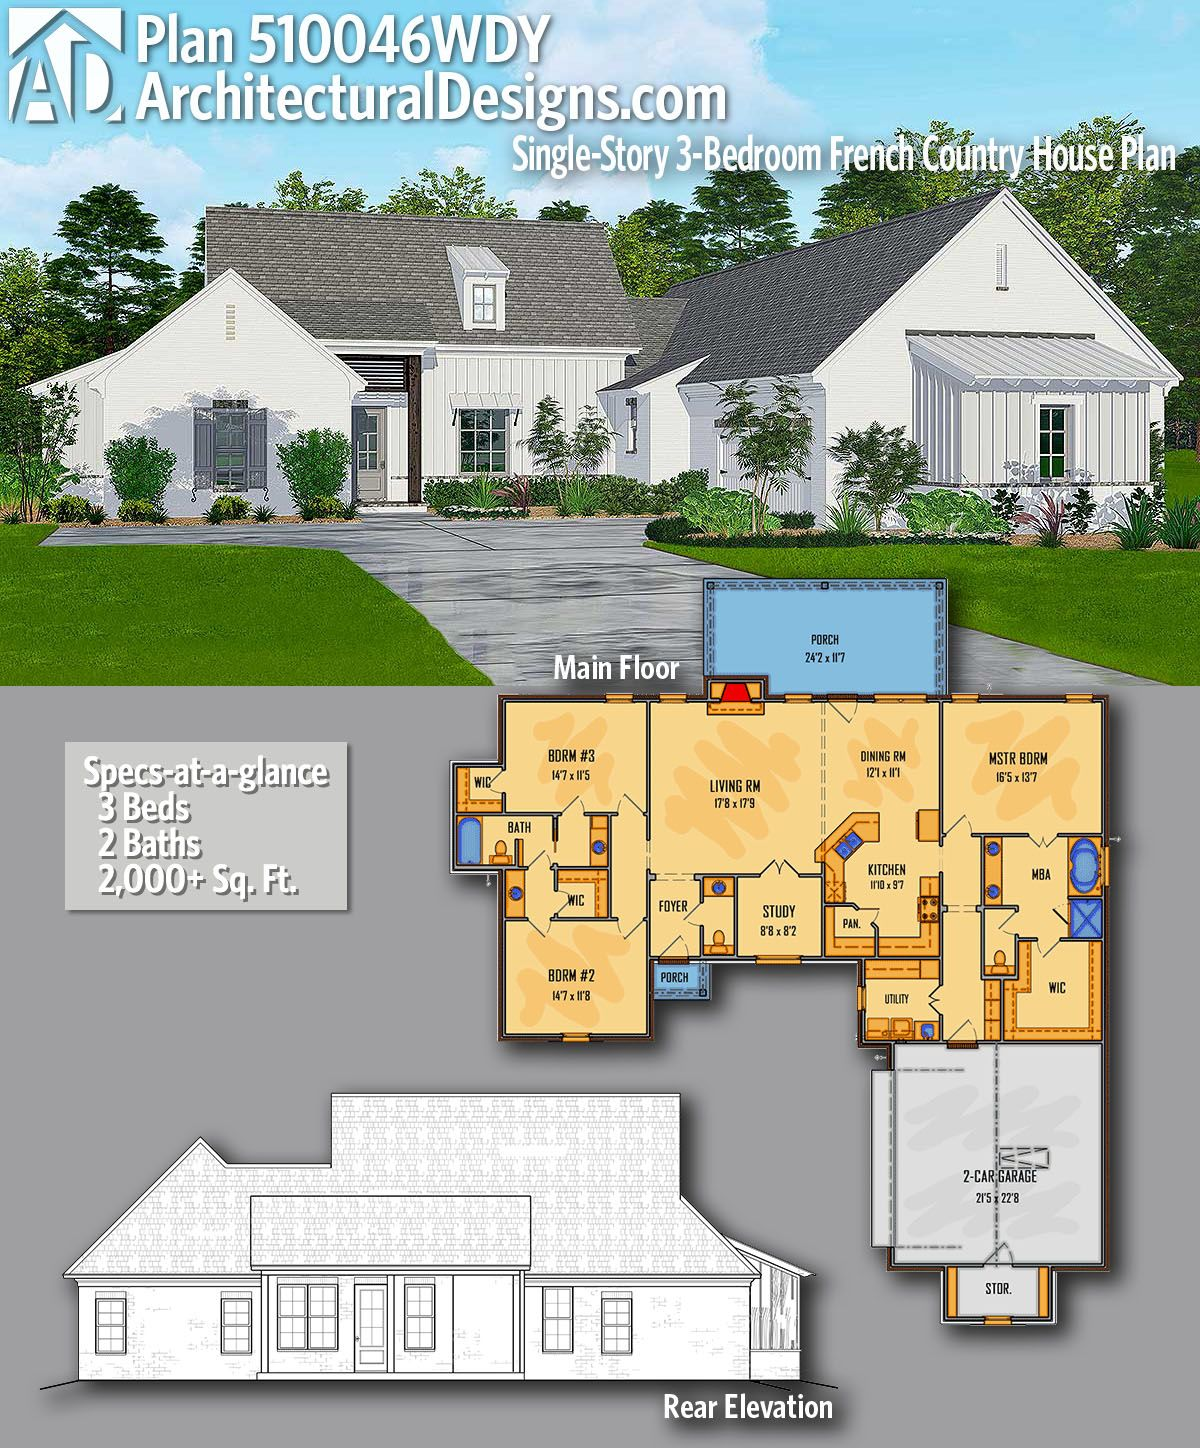 Plan 510046wdy Single Story 3 Bedroom French Country House Plan French Country House Plans House Plans Country House Plan